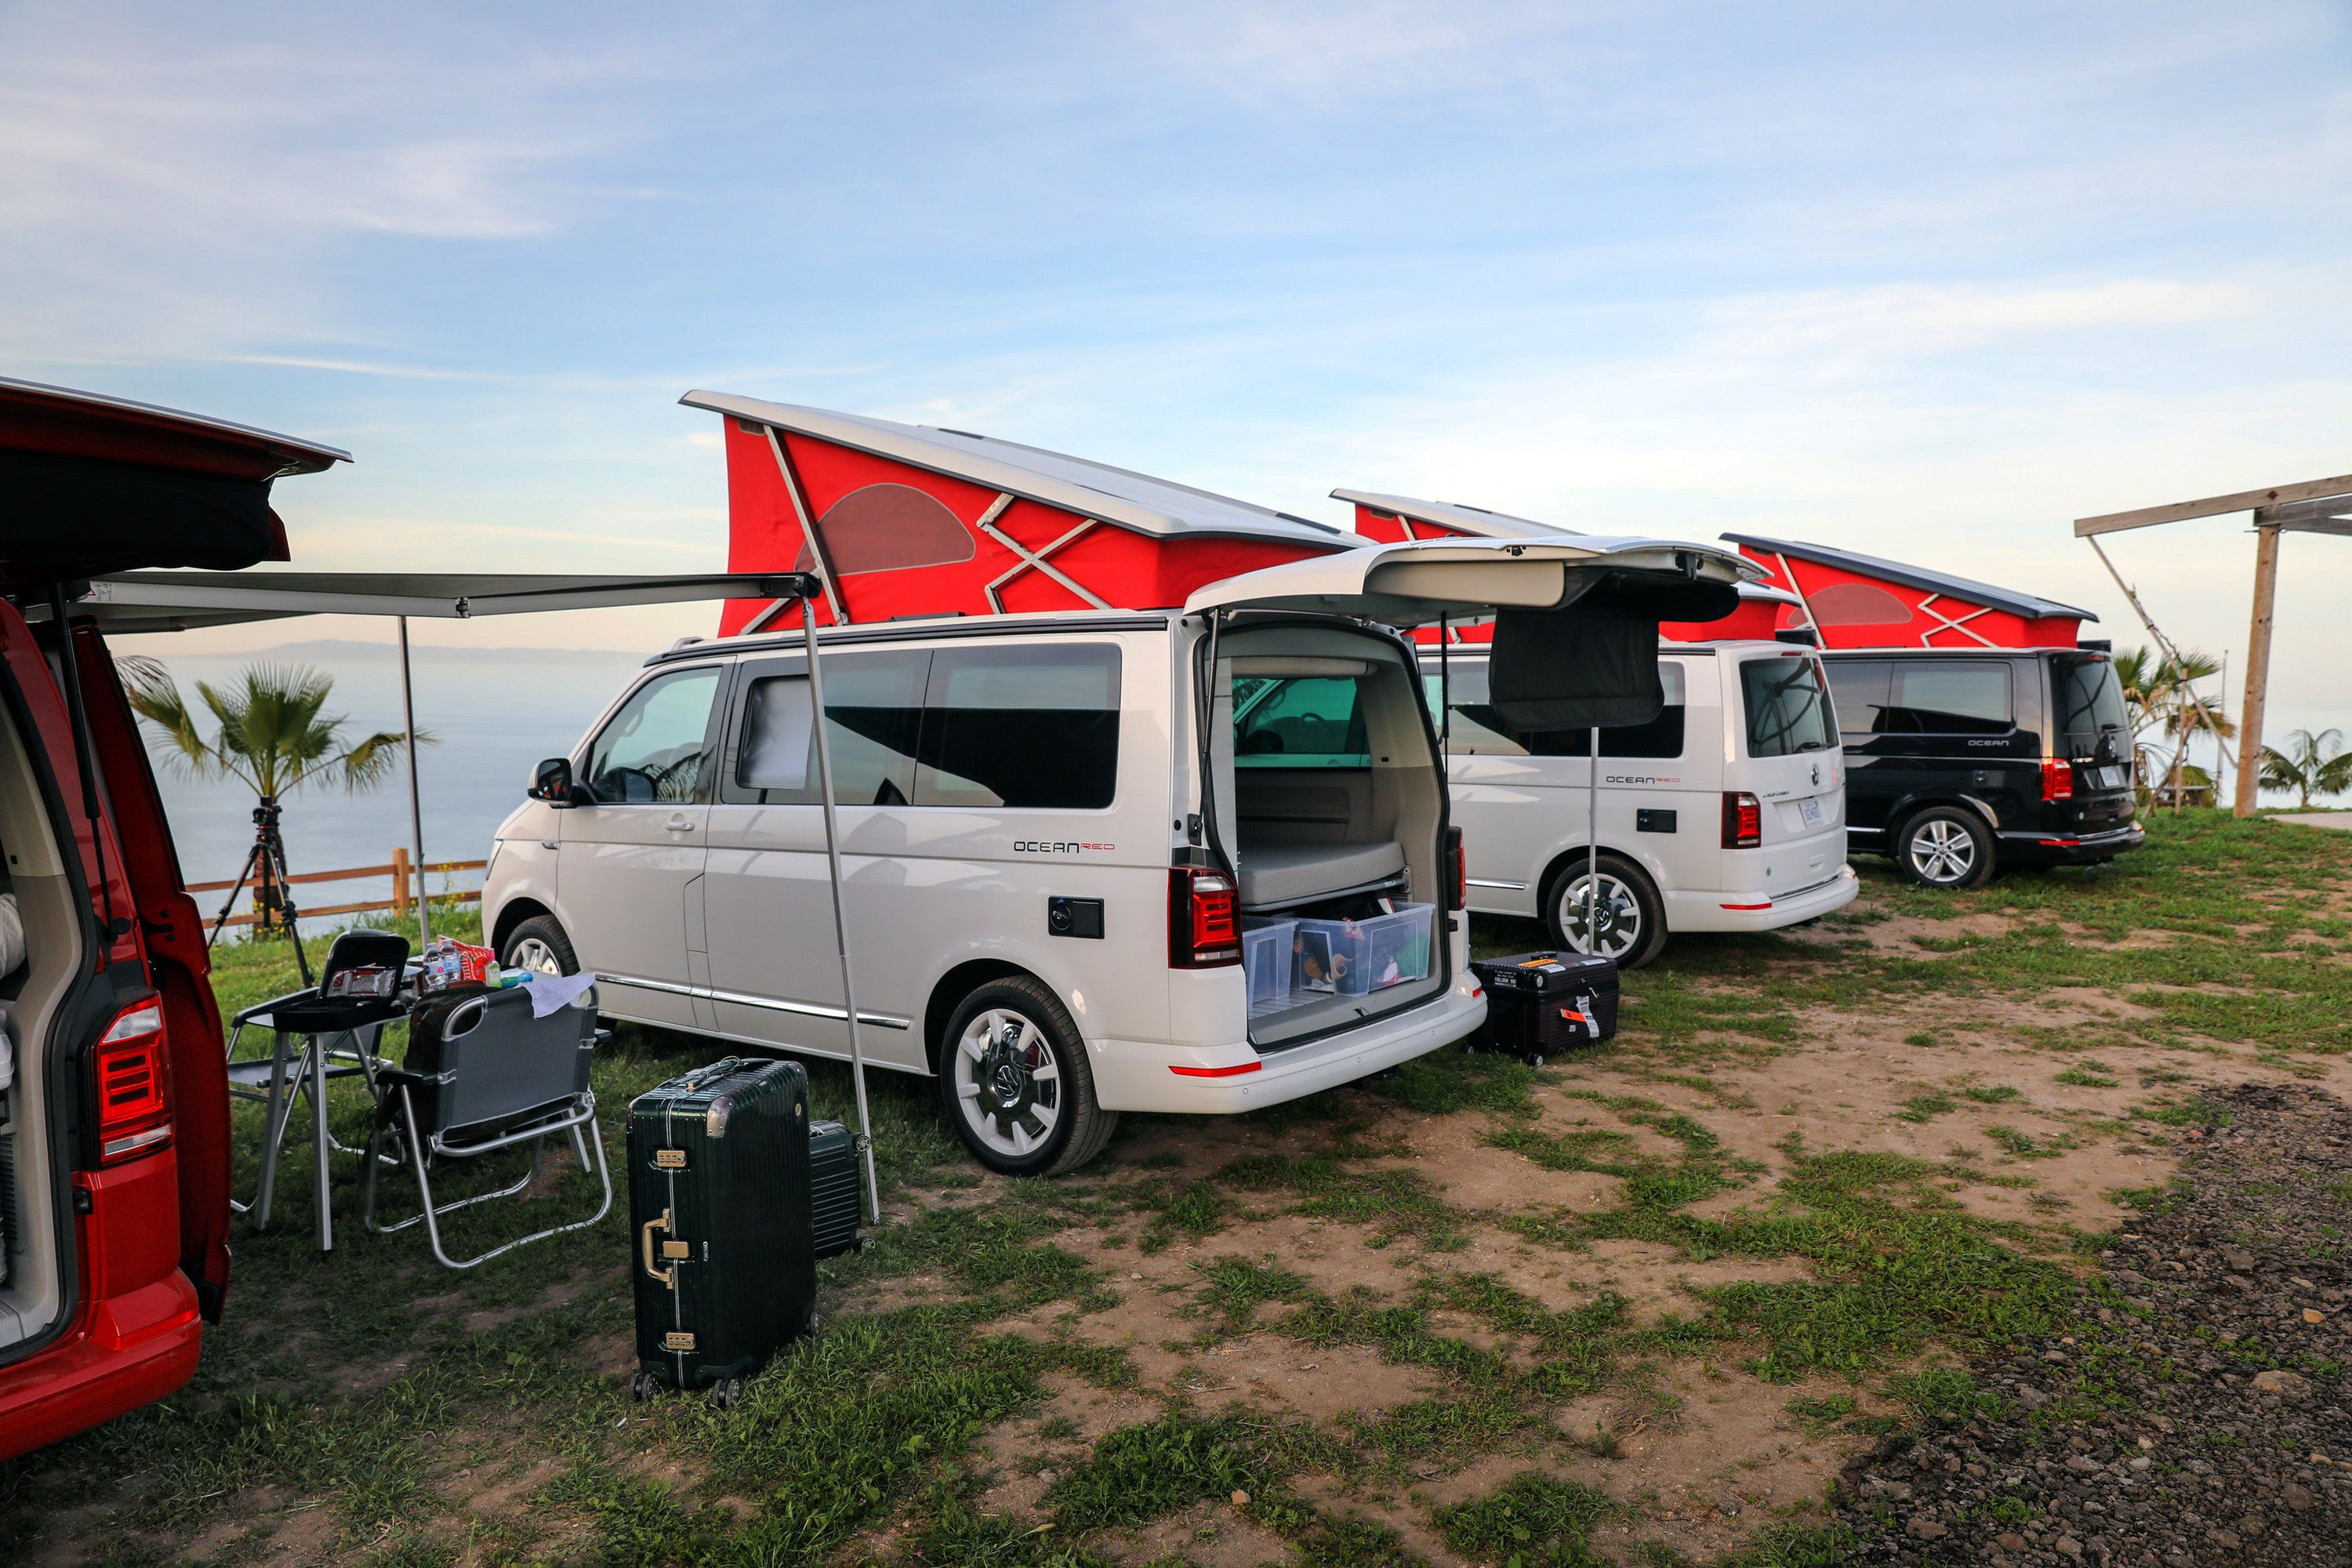 Camping in VW California campervans